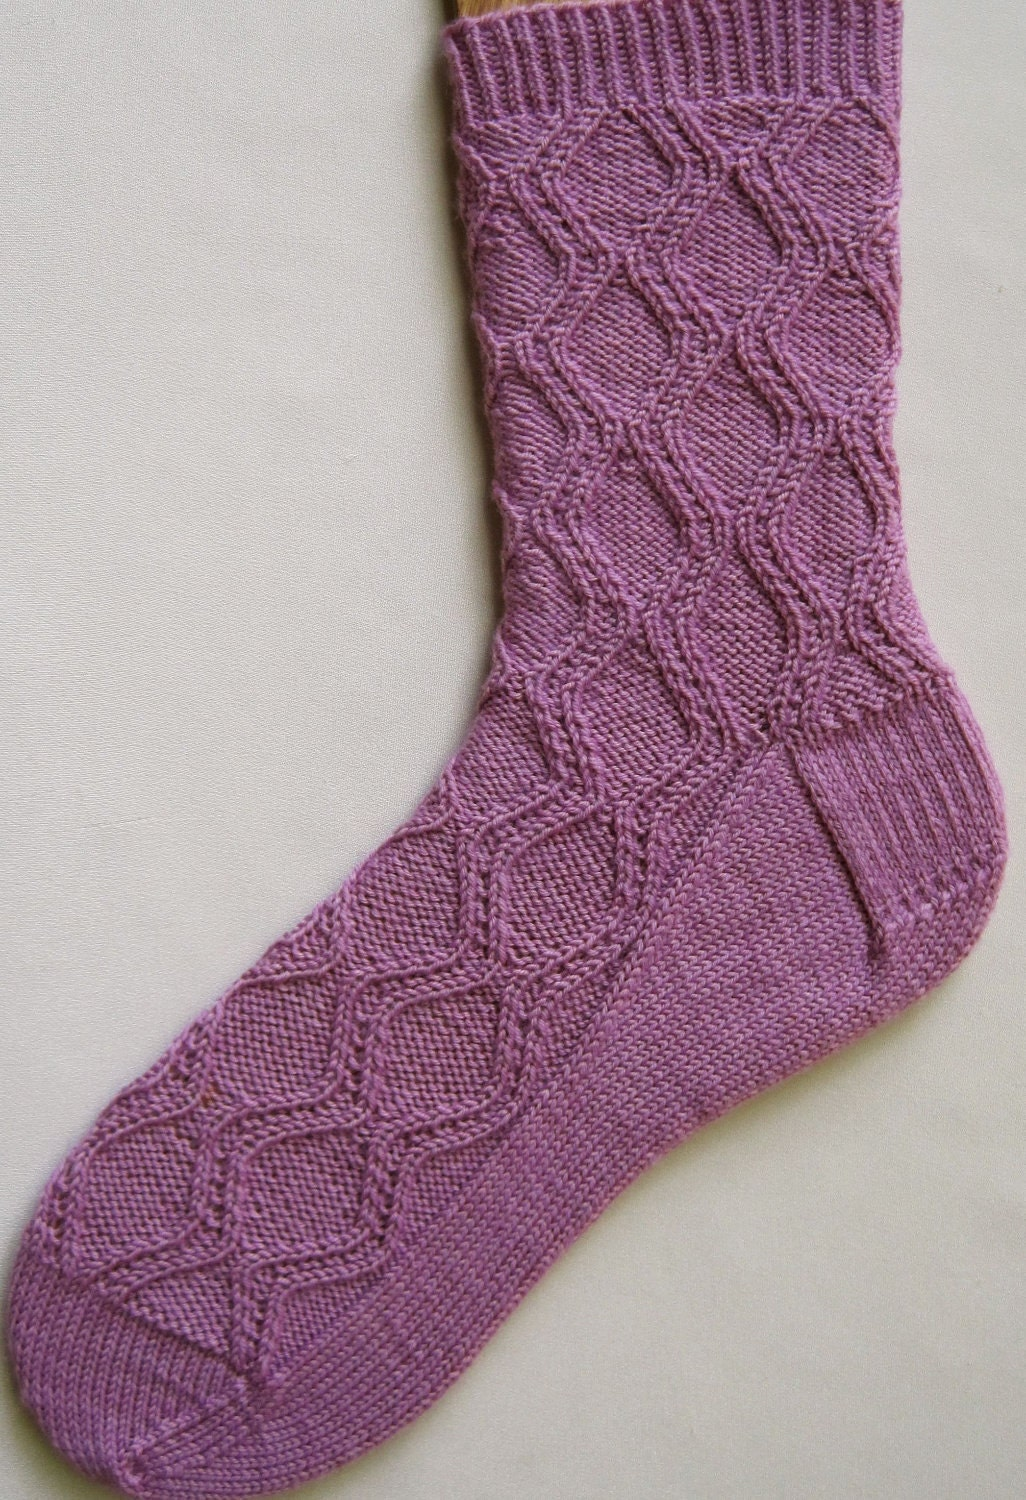 Pattern For Knitting Socks On 9 Inch Circular Needles : Knit Sock Pattern: Hourglass Socks by WearableArtEmporium ...